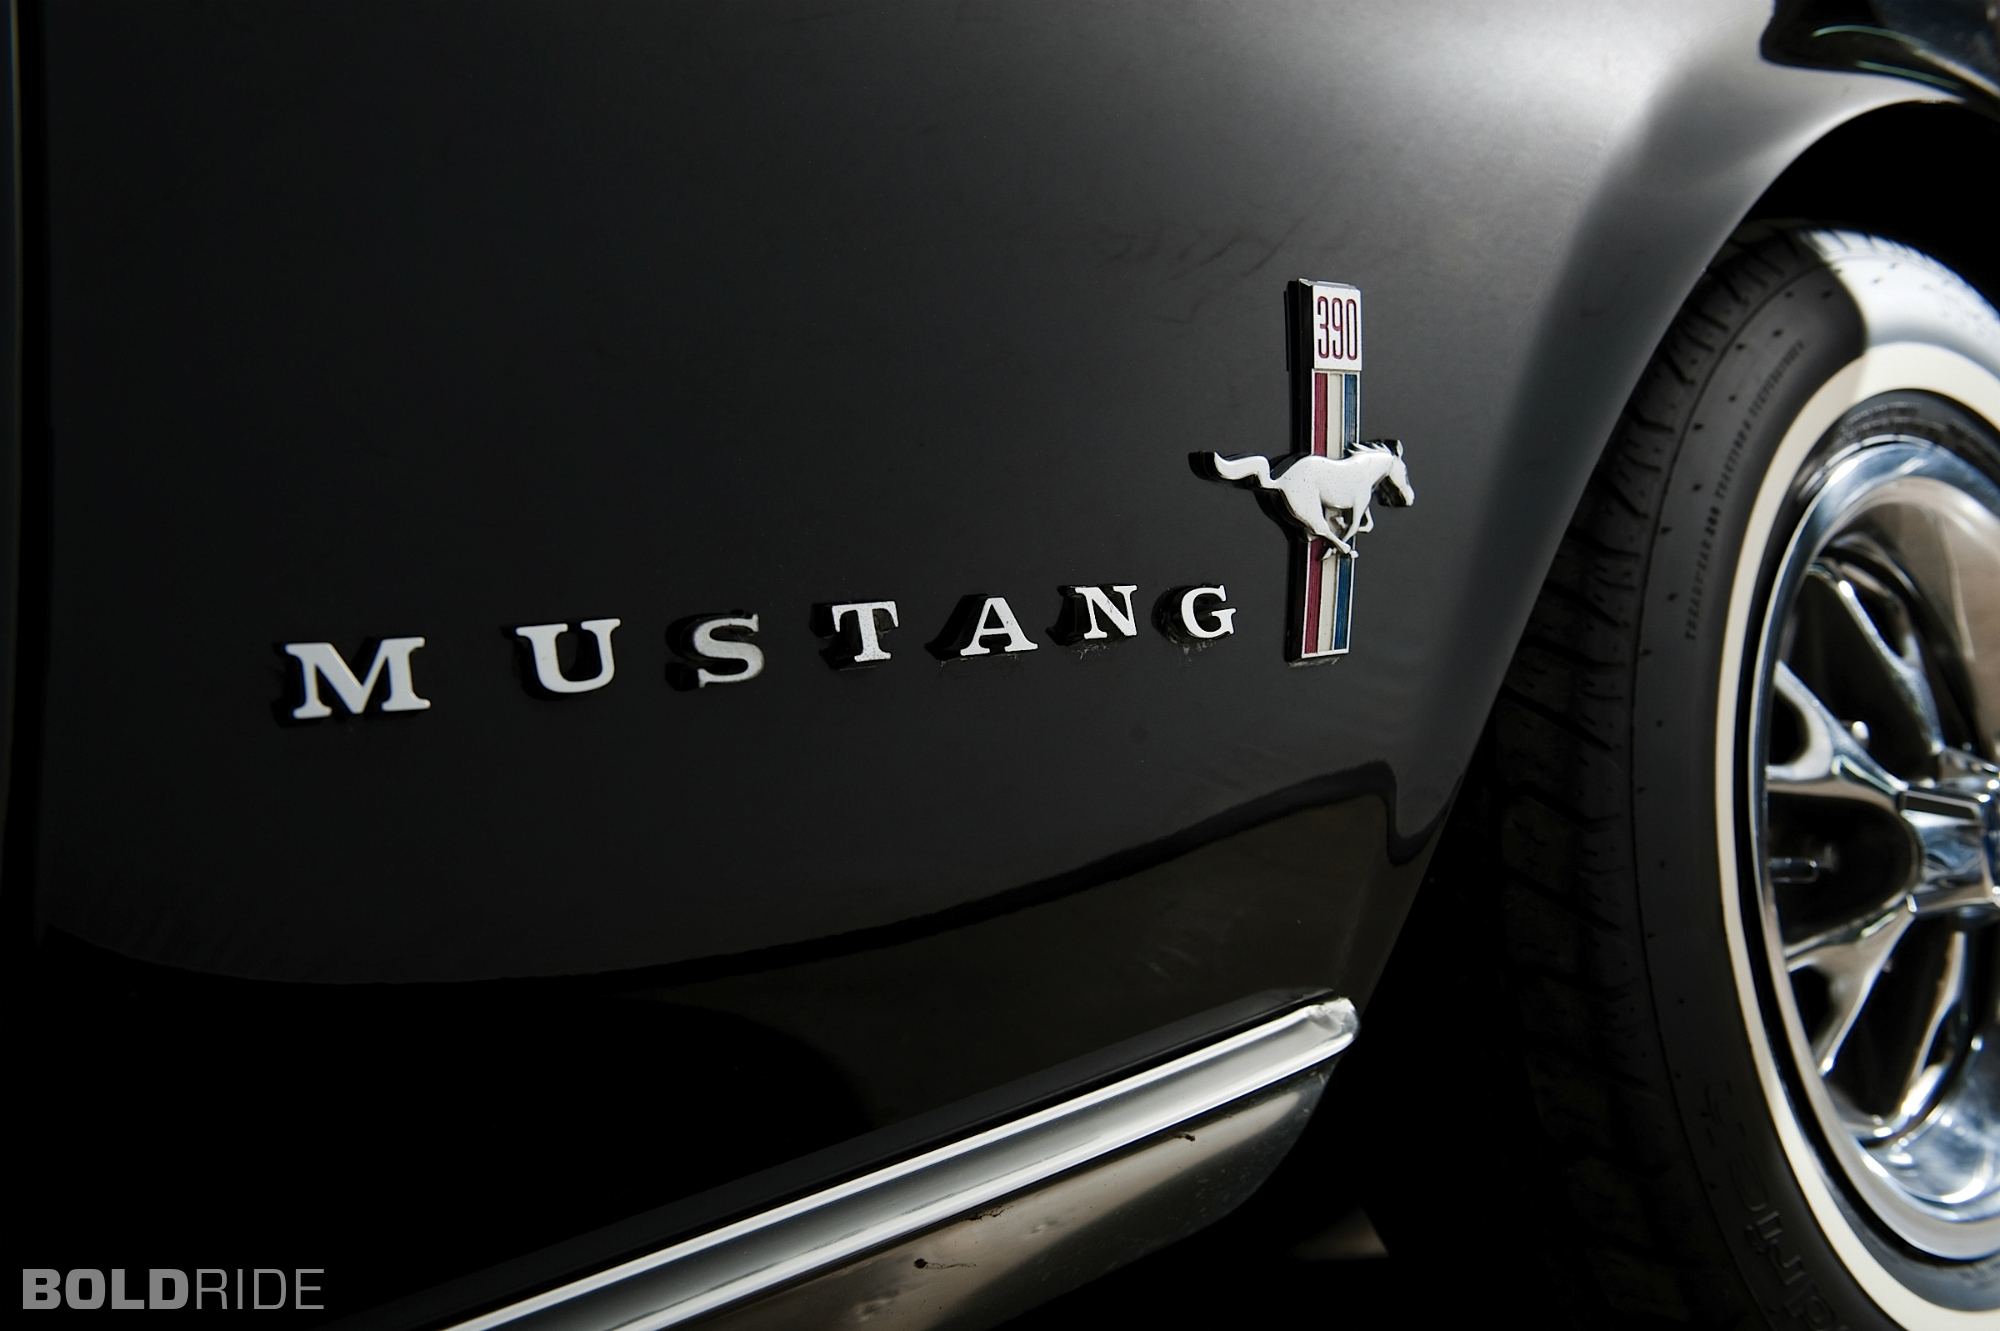 Mustang Emblem Wallpaper Wallpapersafari